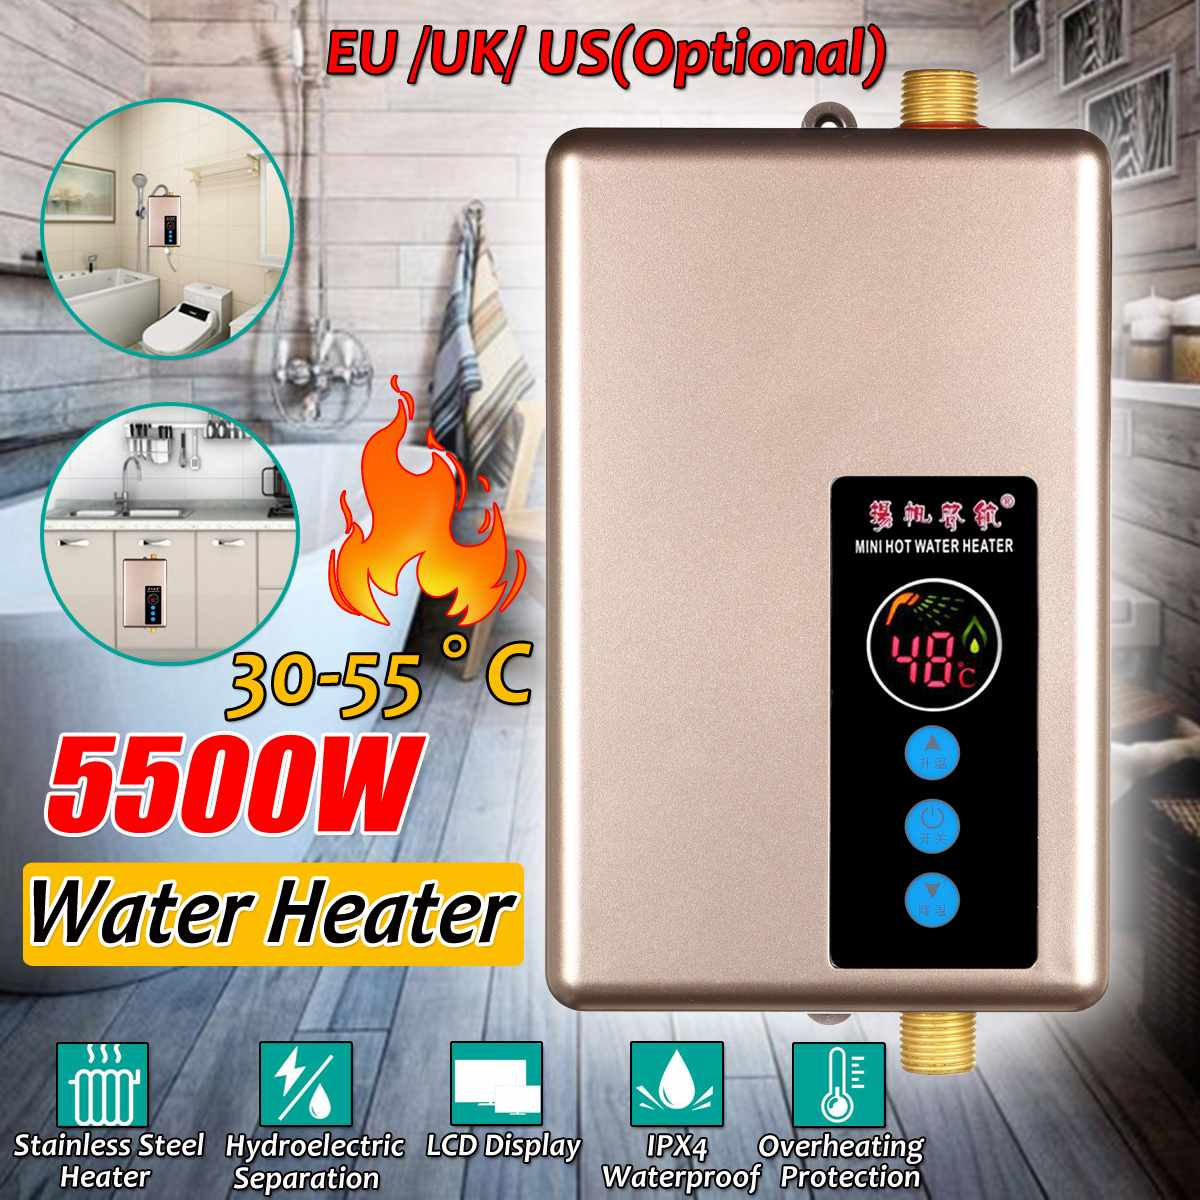 Instant Electric Water Heater Tankless Water Heater Shower Instant  Hot Water For Bathroom 5500W W/ Digital Screen EU/US/UK Plug